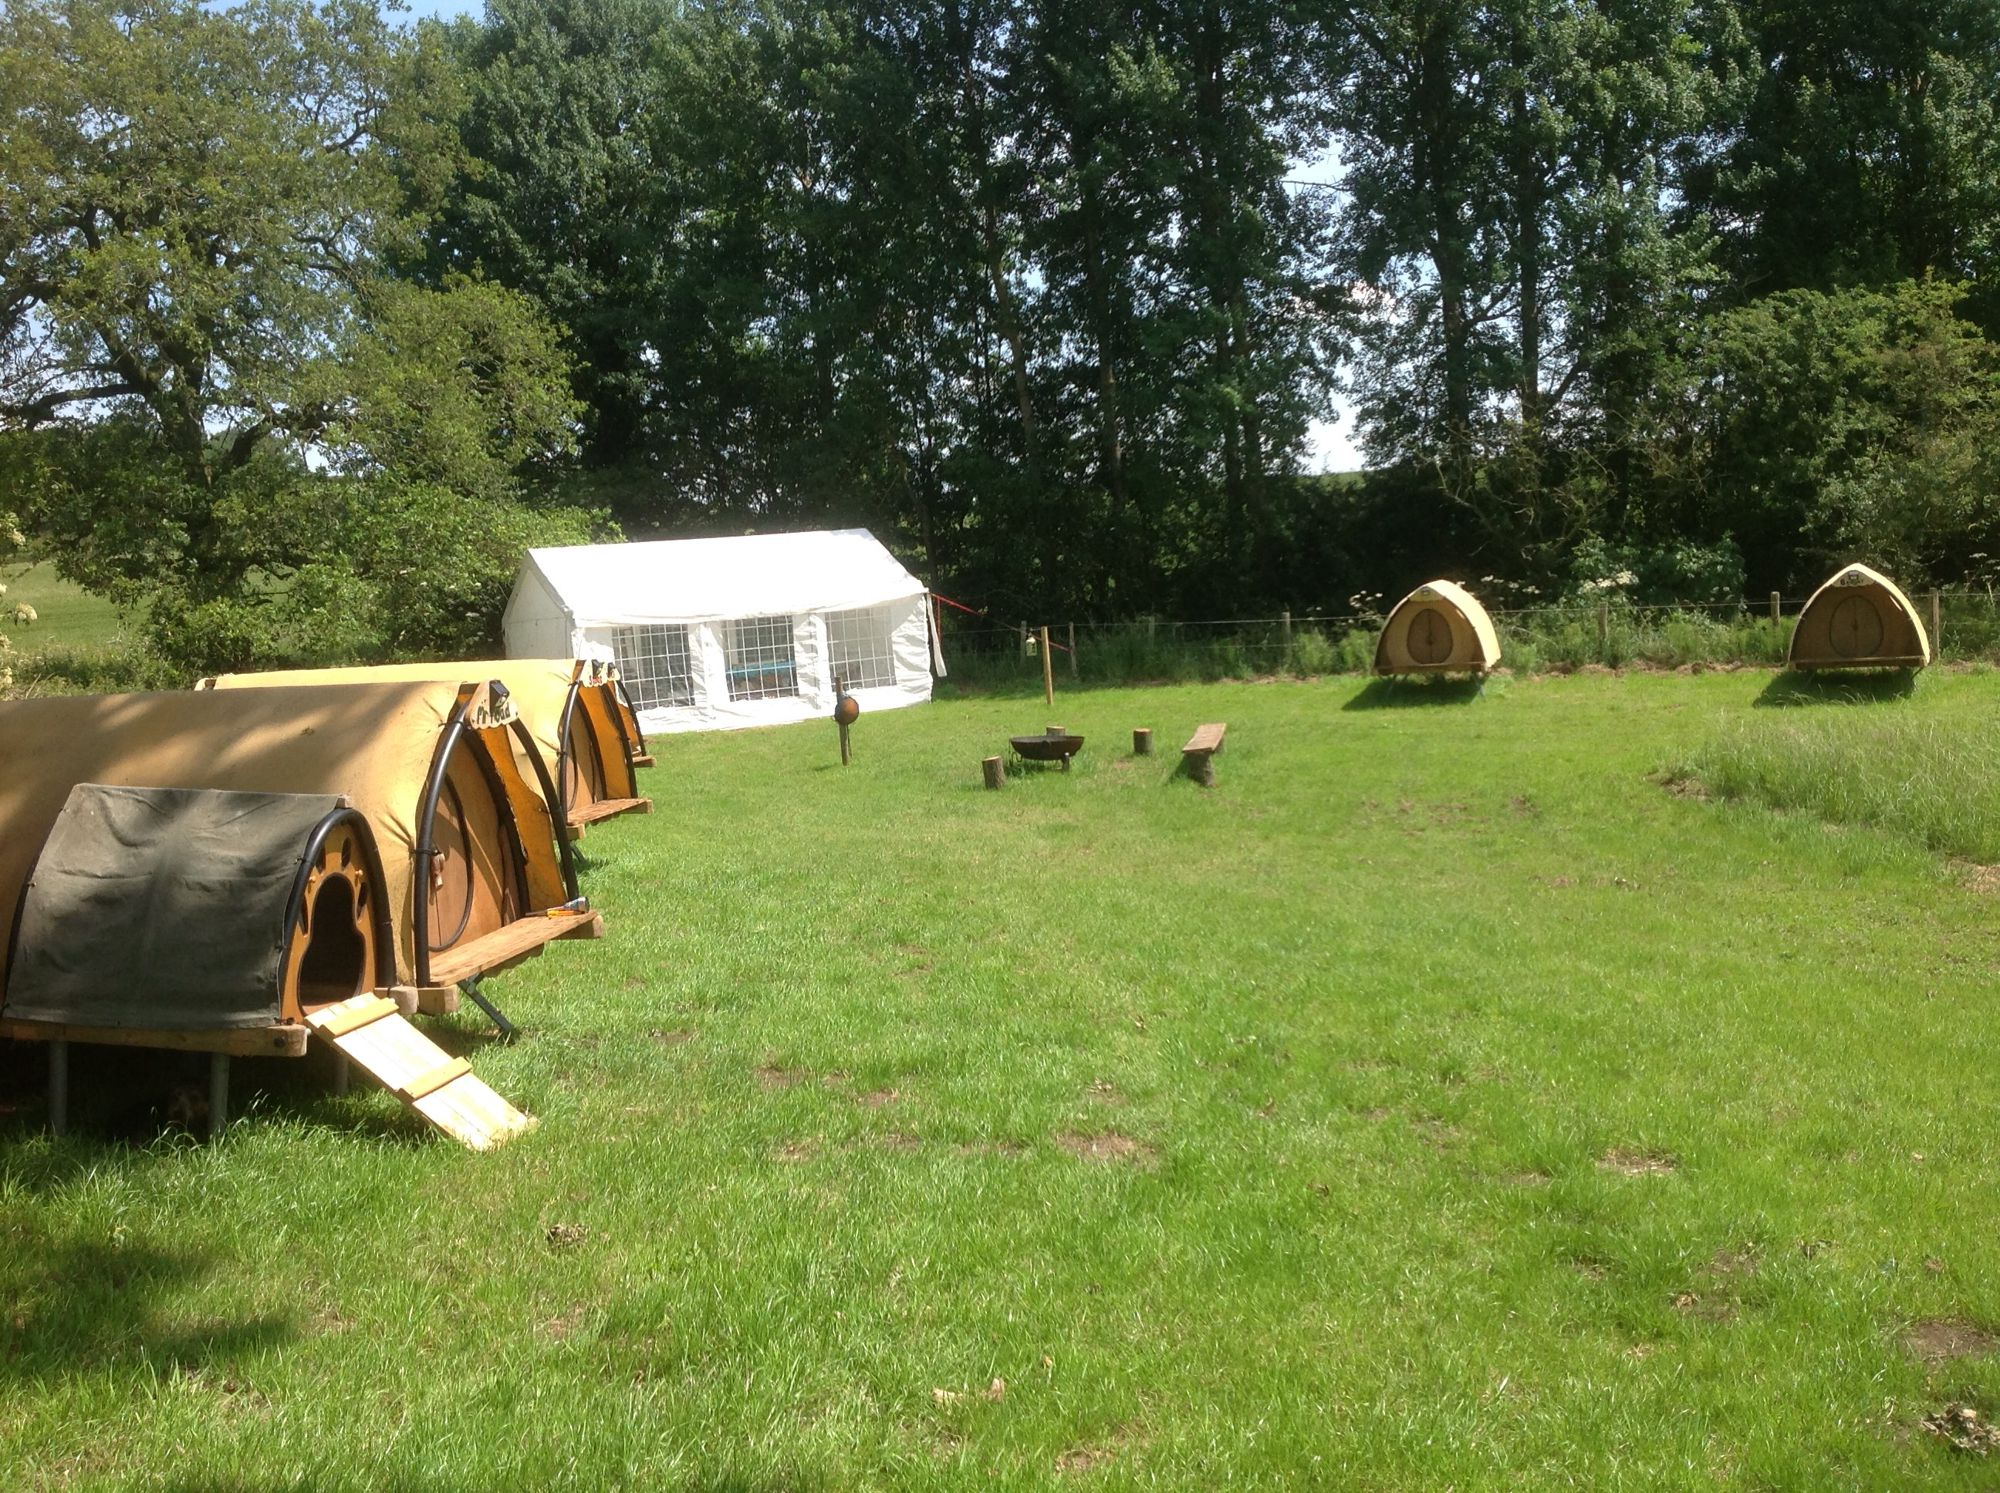 Cosy Cocoons & Campsites in the Cotswolds u2013 Recommended camping sites in the ...